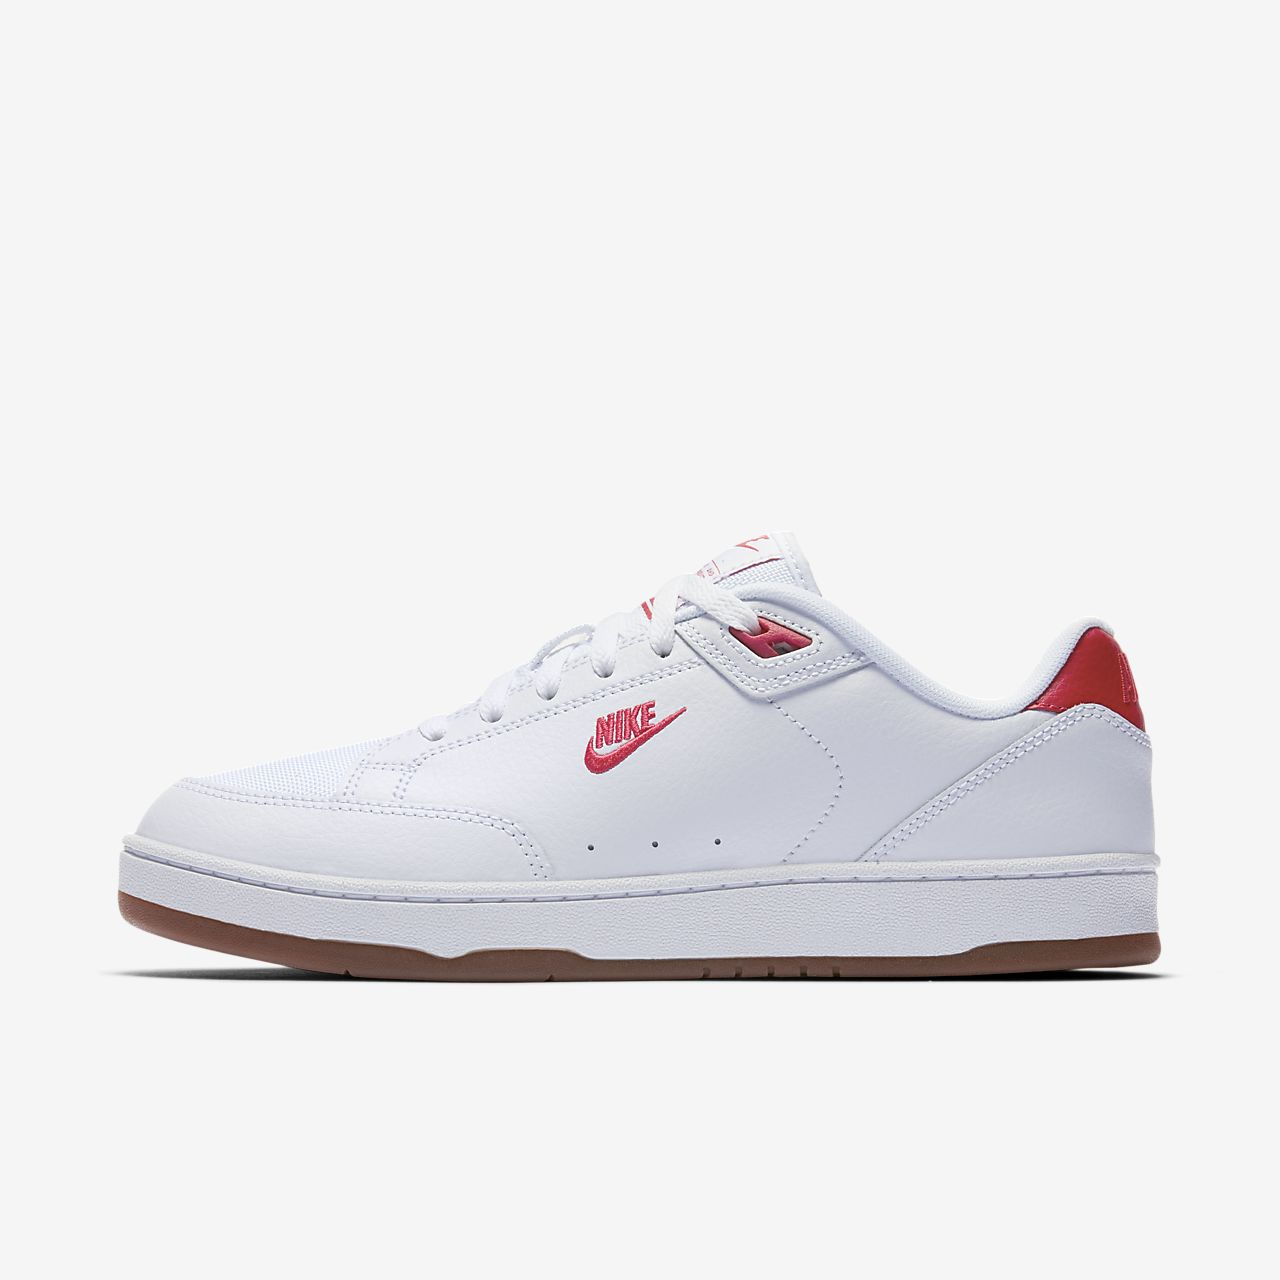 Chaussure pour Nike GrandstanPremium pour Chaussure Nike FR aa90af